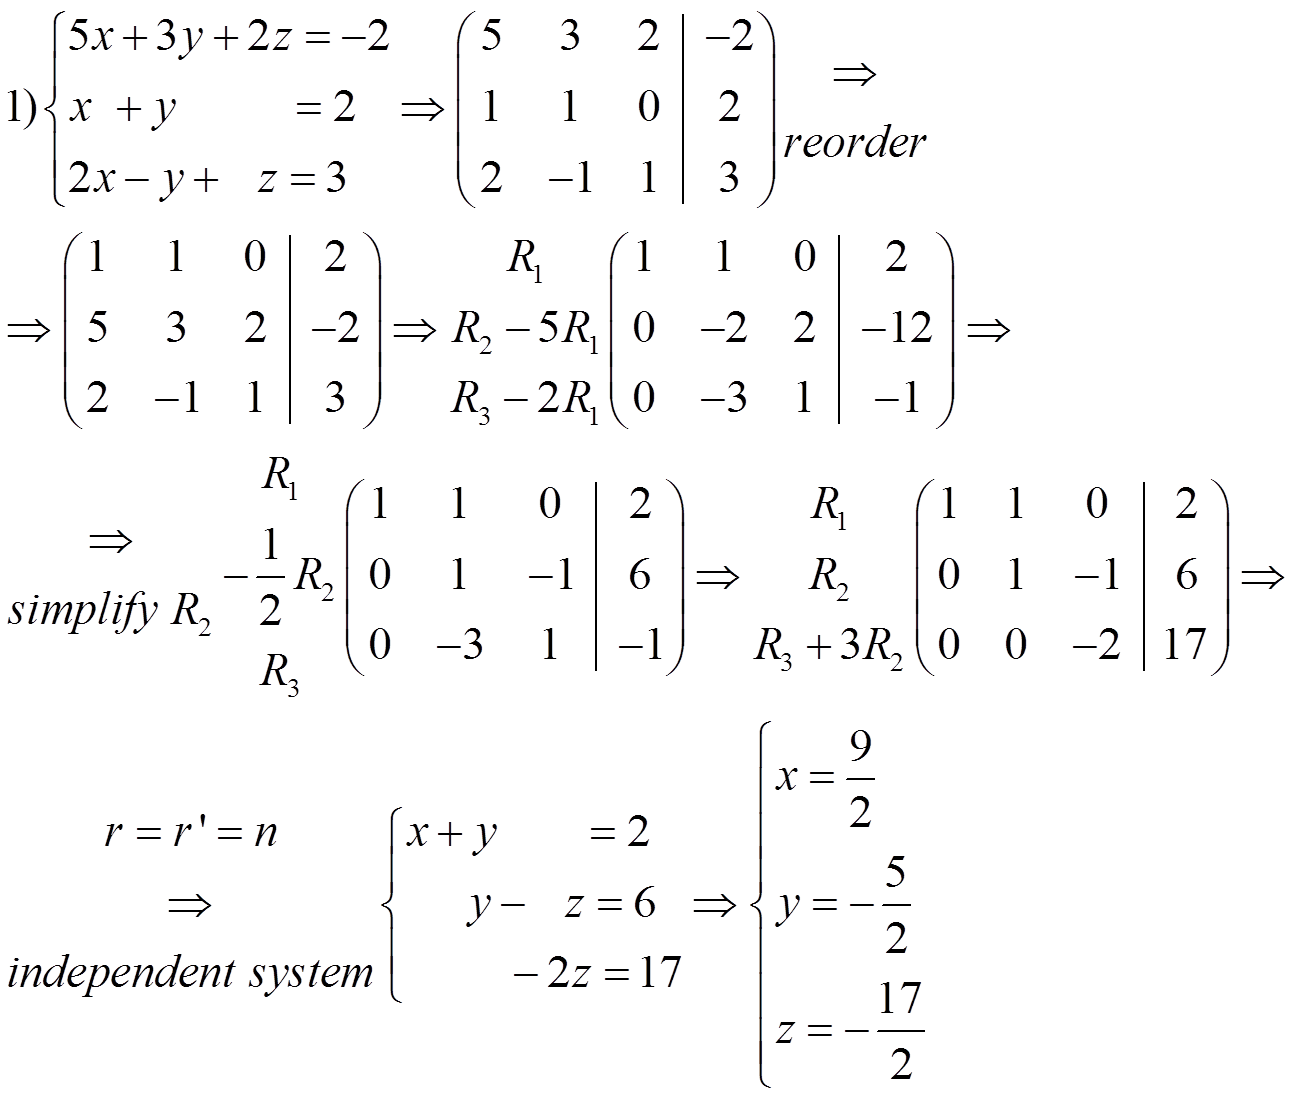 How To Solve System Of Equations Using Gaussian